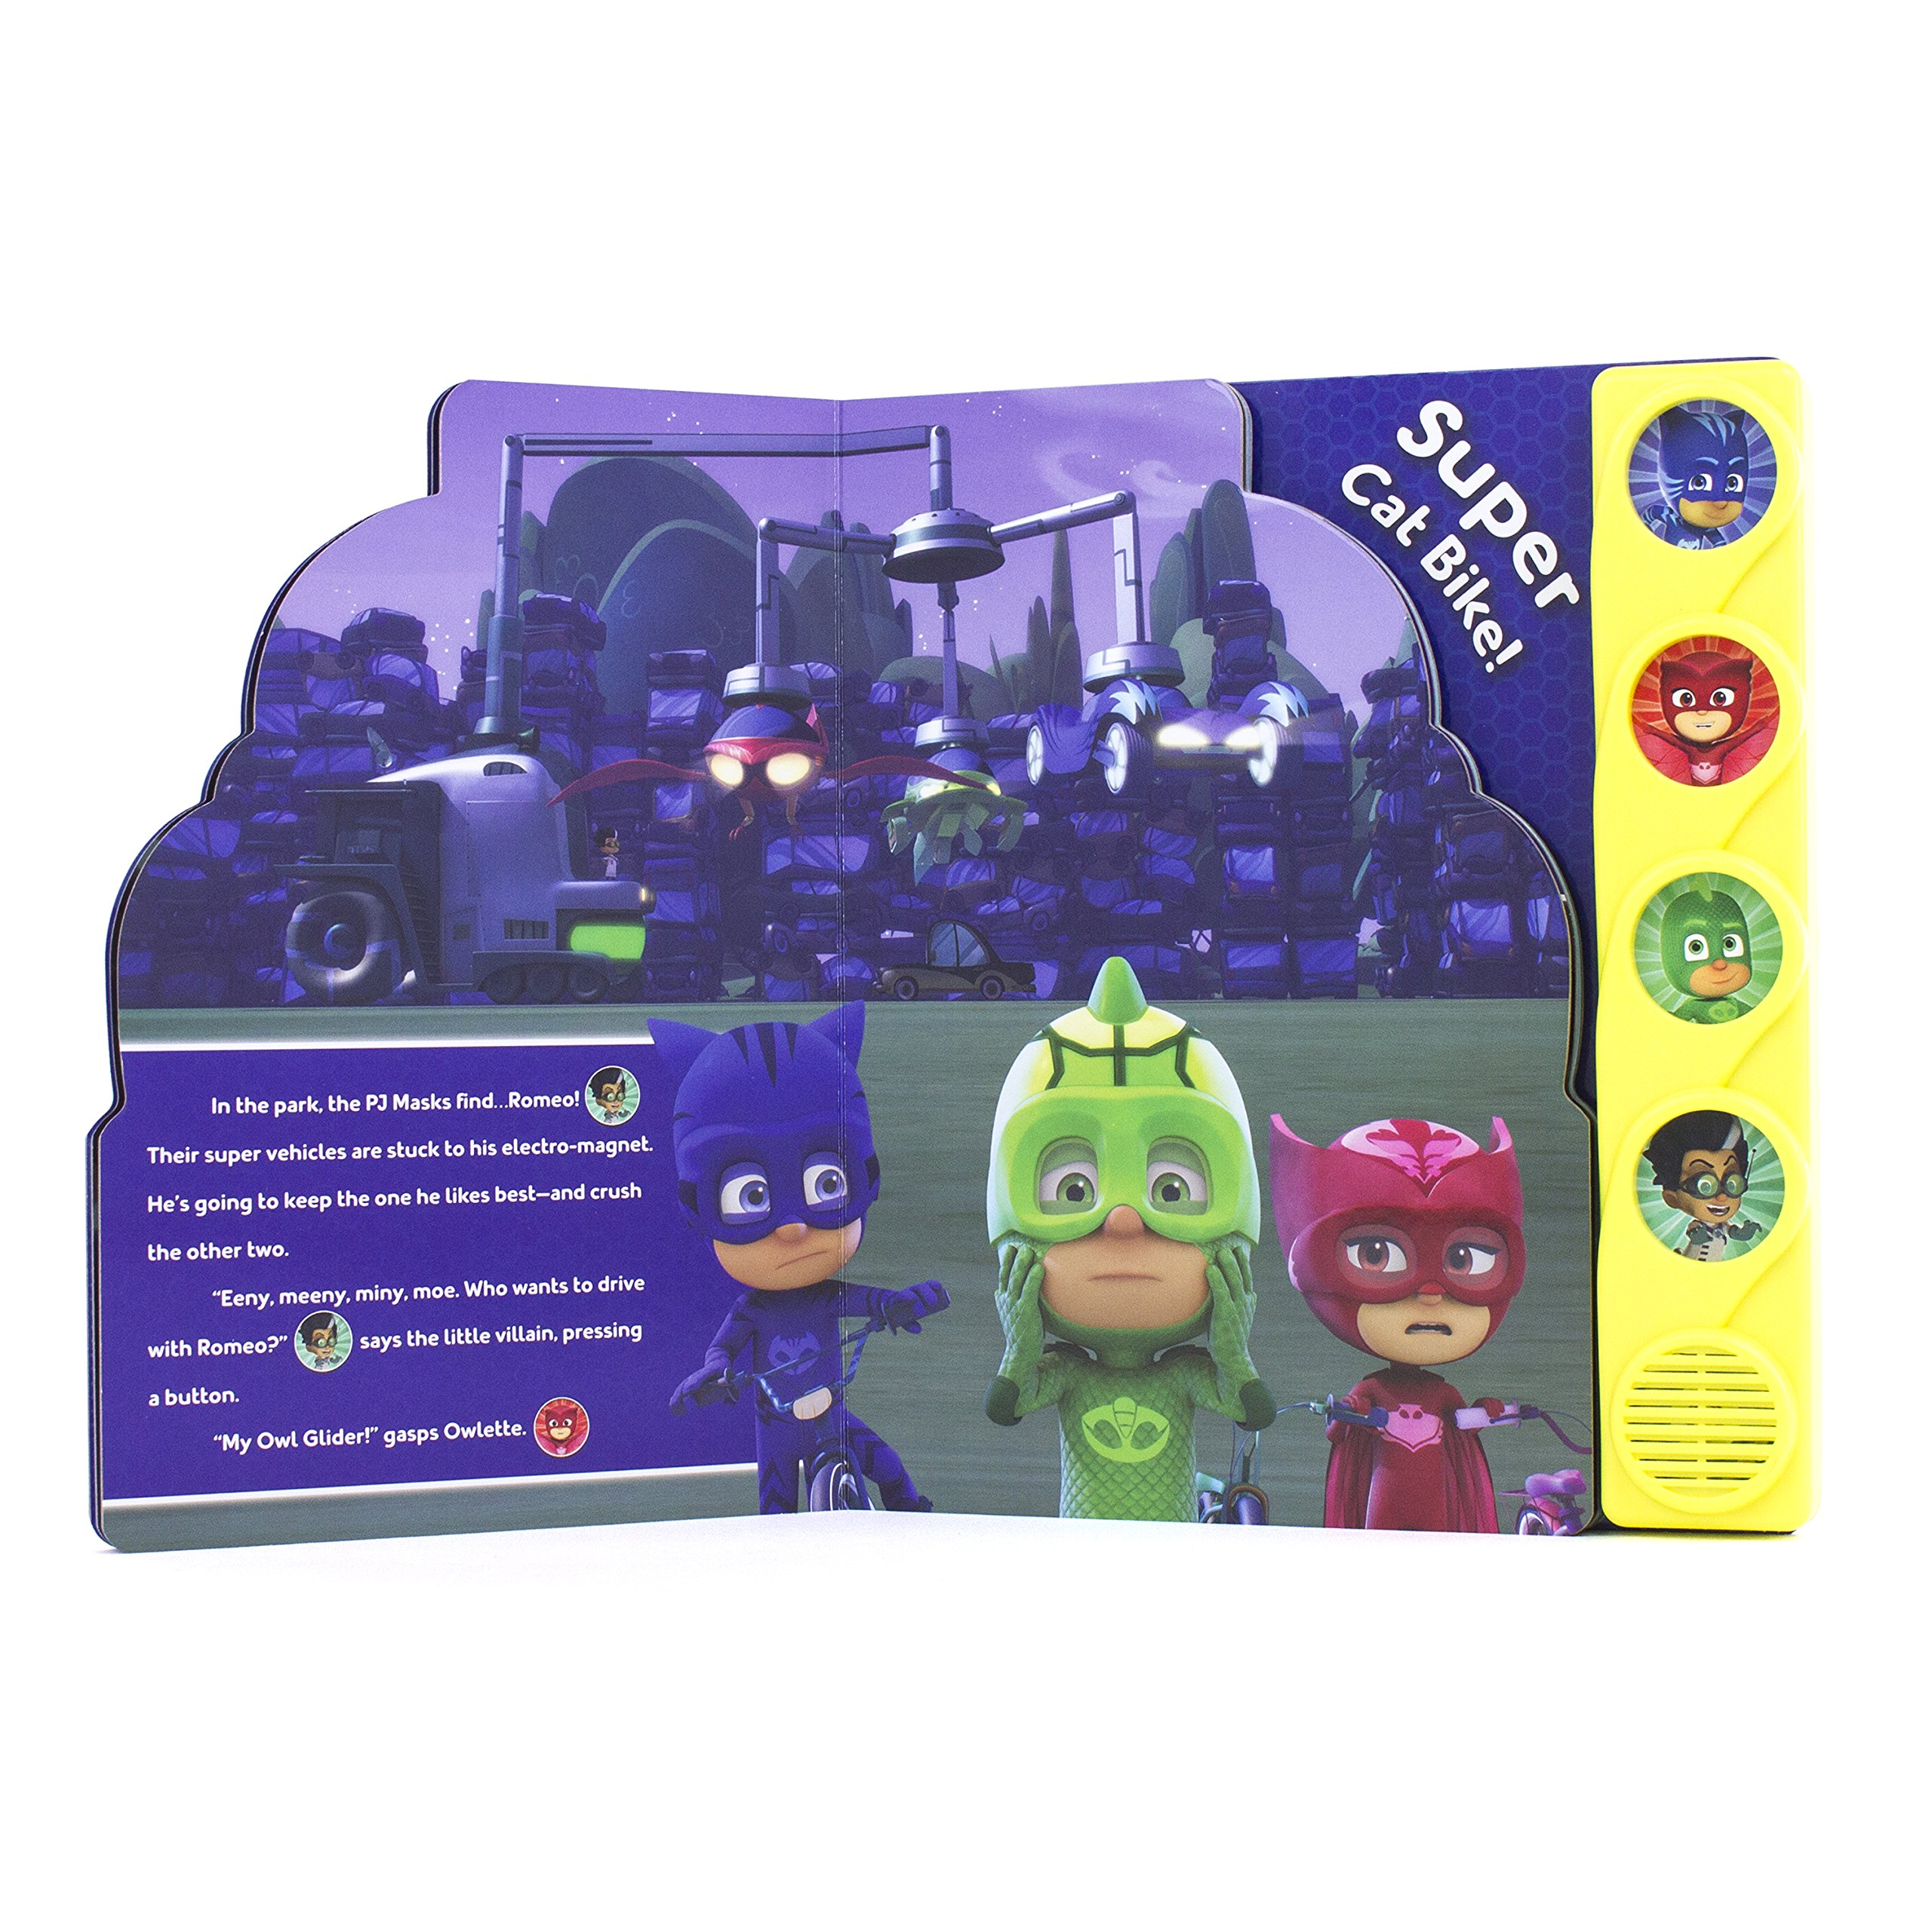 PJ Masks Super Cat Bike! (PI Kids) Little Shaped Sound Board Book 9781503724136: Adapted by Erin Rose Wage, Editors of Phoenix International: 9781503724136: ...